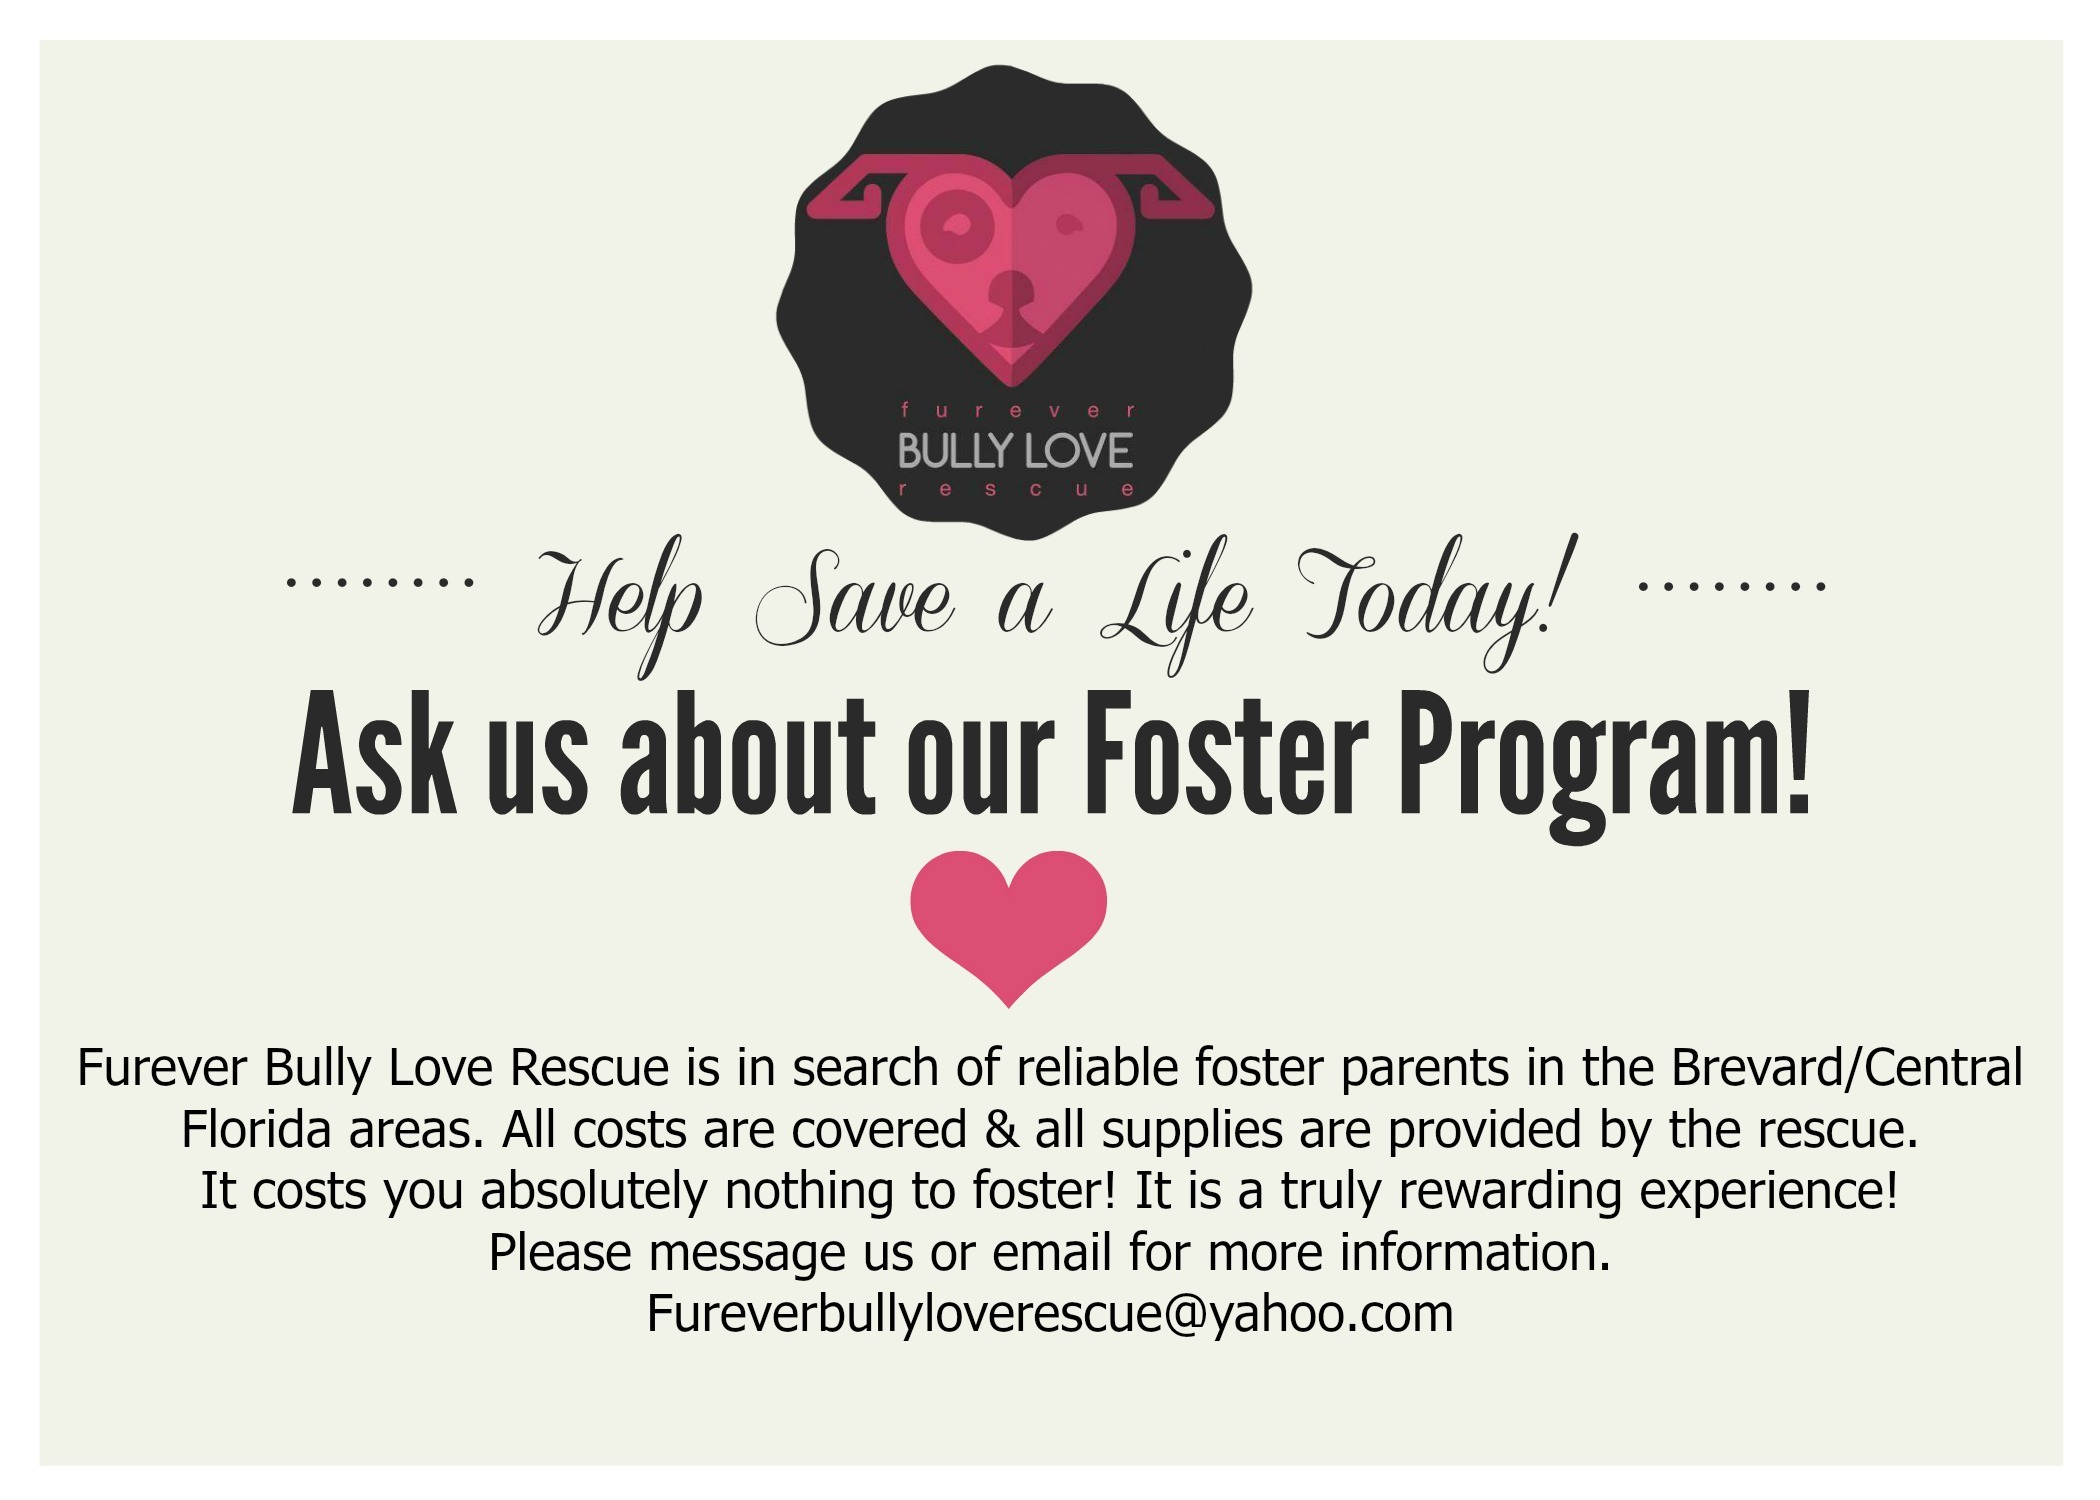 Ask us about our FOSTER PROGRAM!